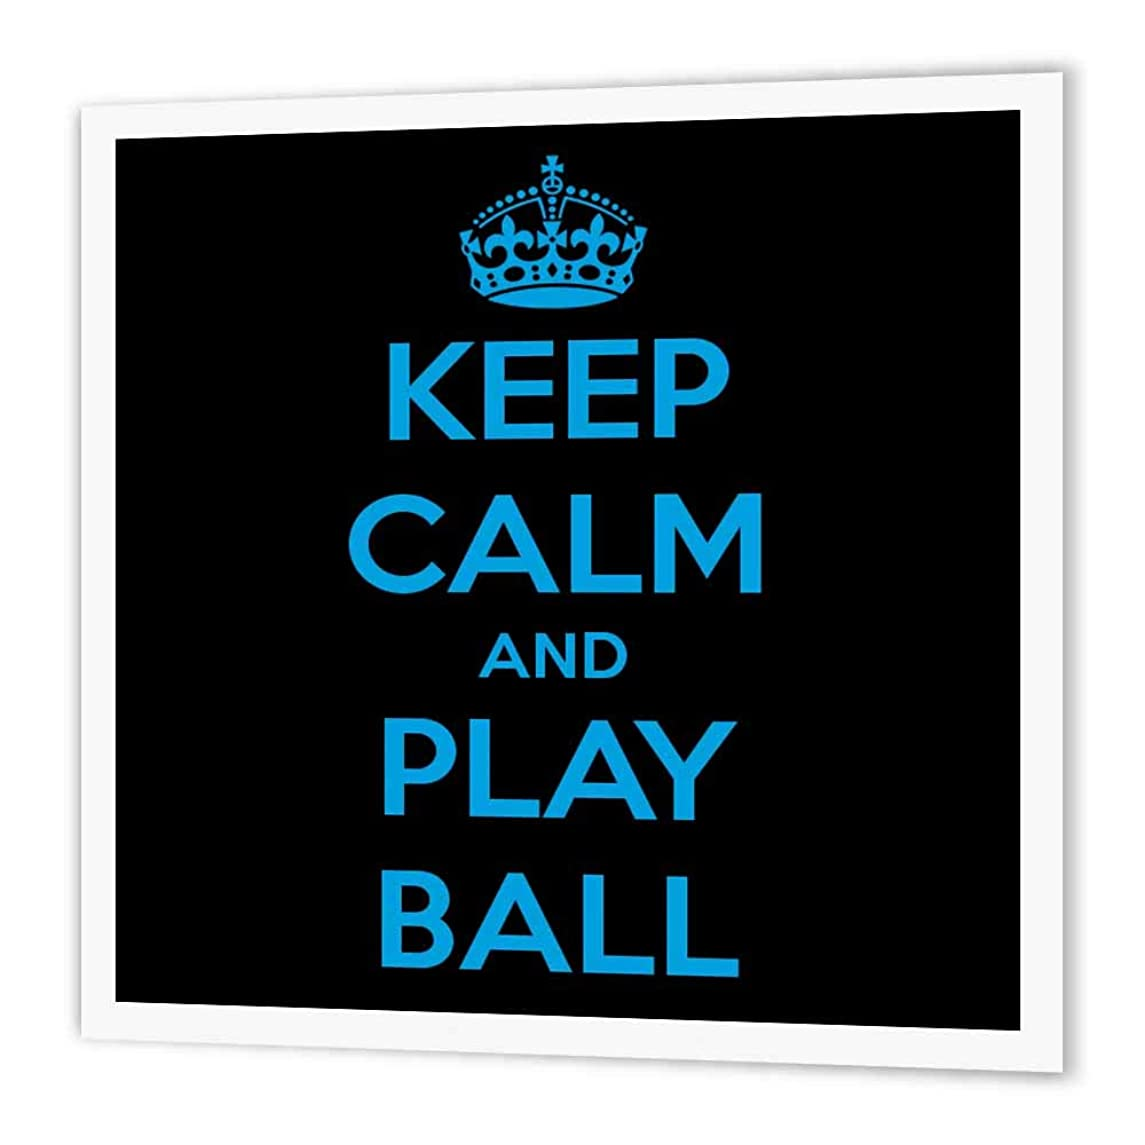 3dRose ht_171914_1 Keep Calm and Play Ball. Black and Blue-Iron on Heat Transfer Paper for White Material, 8 by 8-Inch